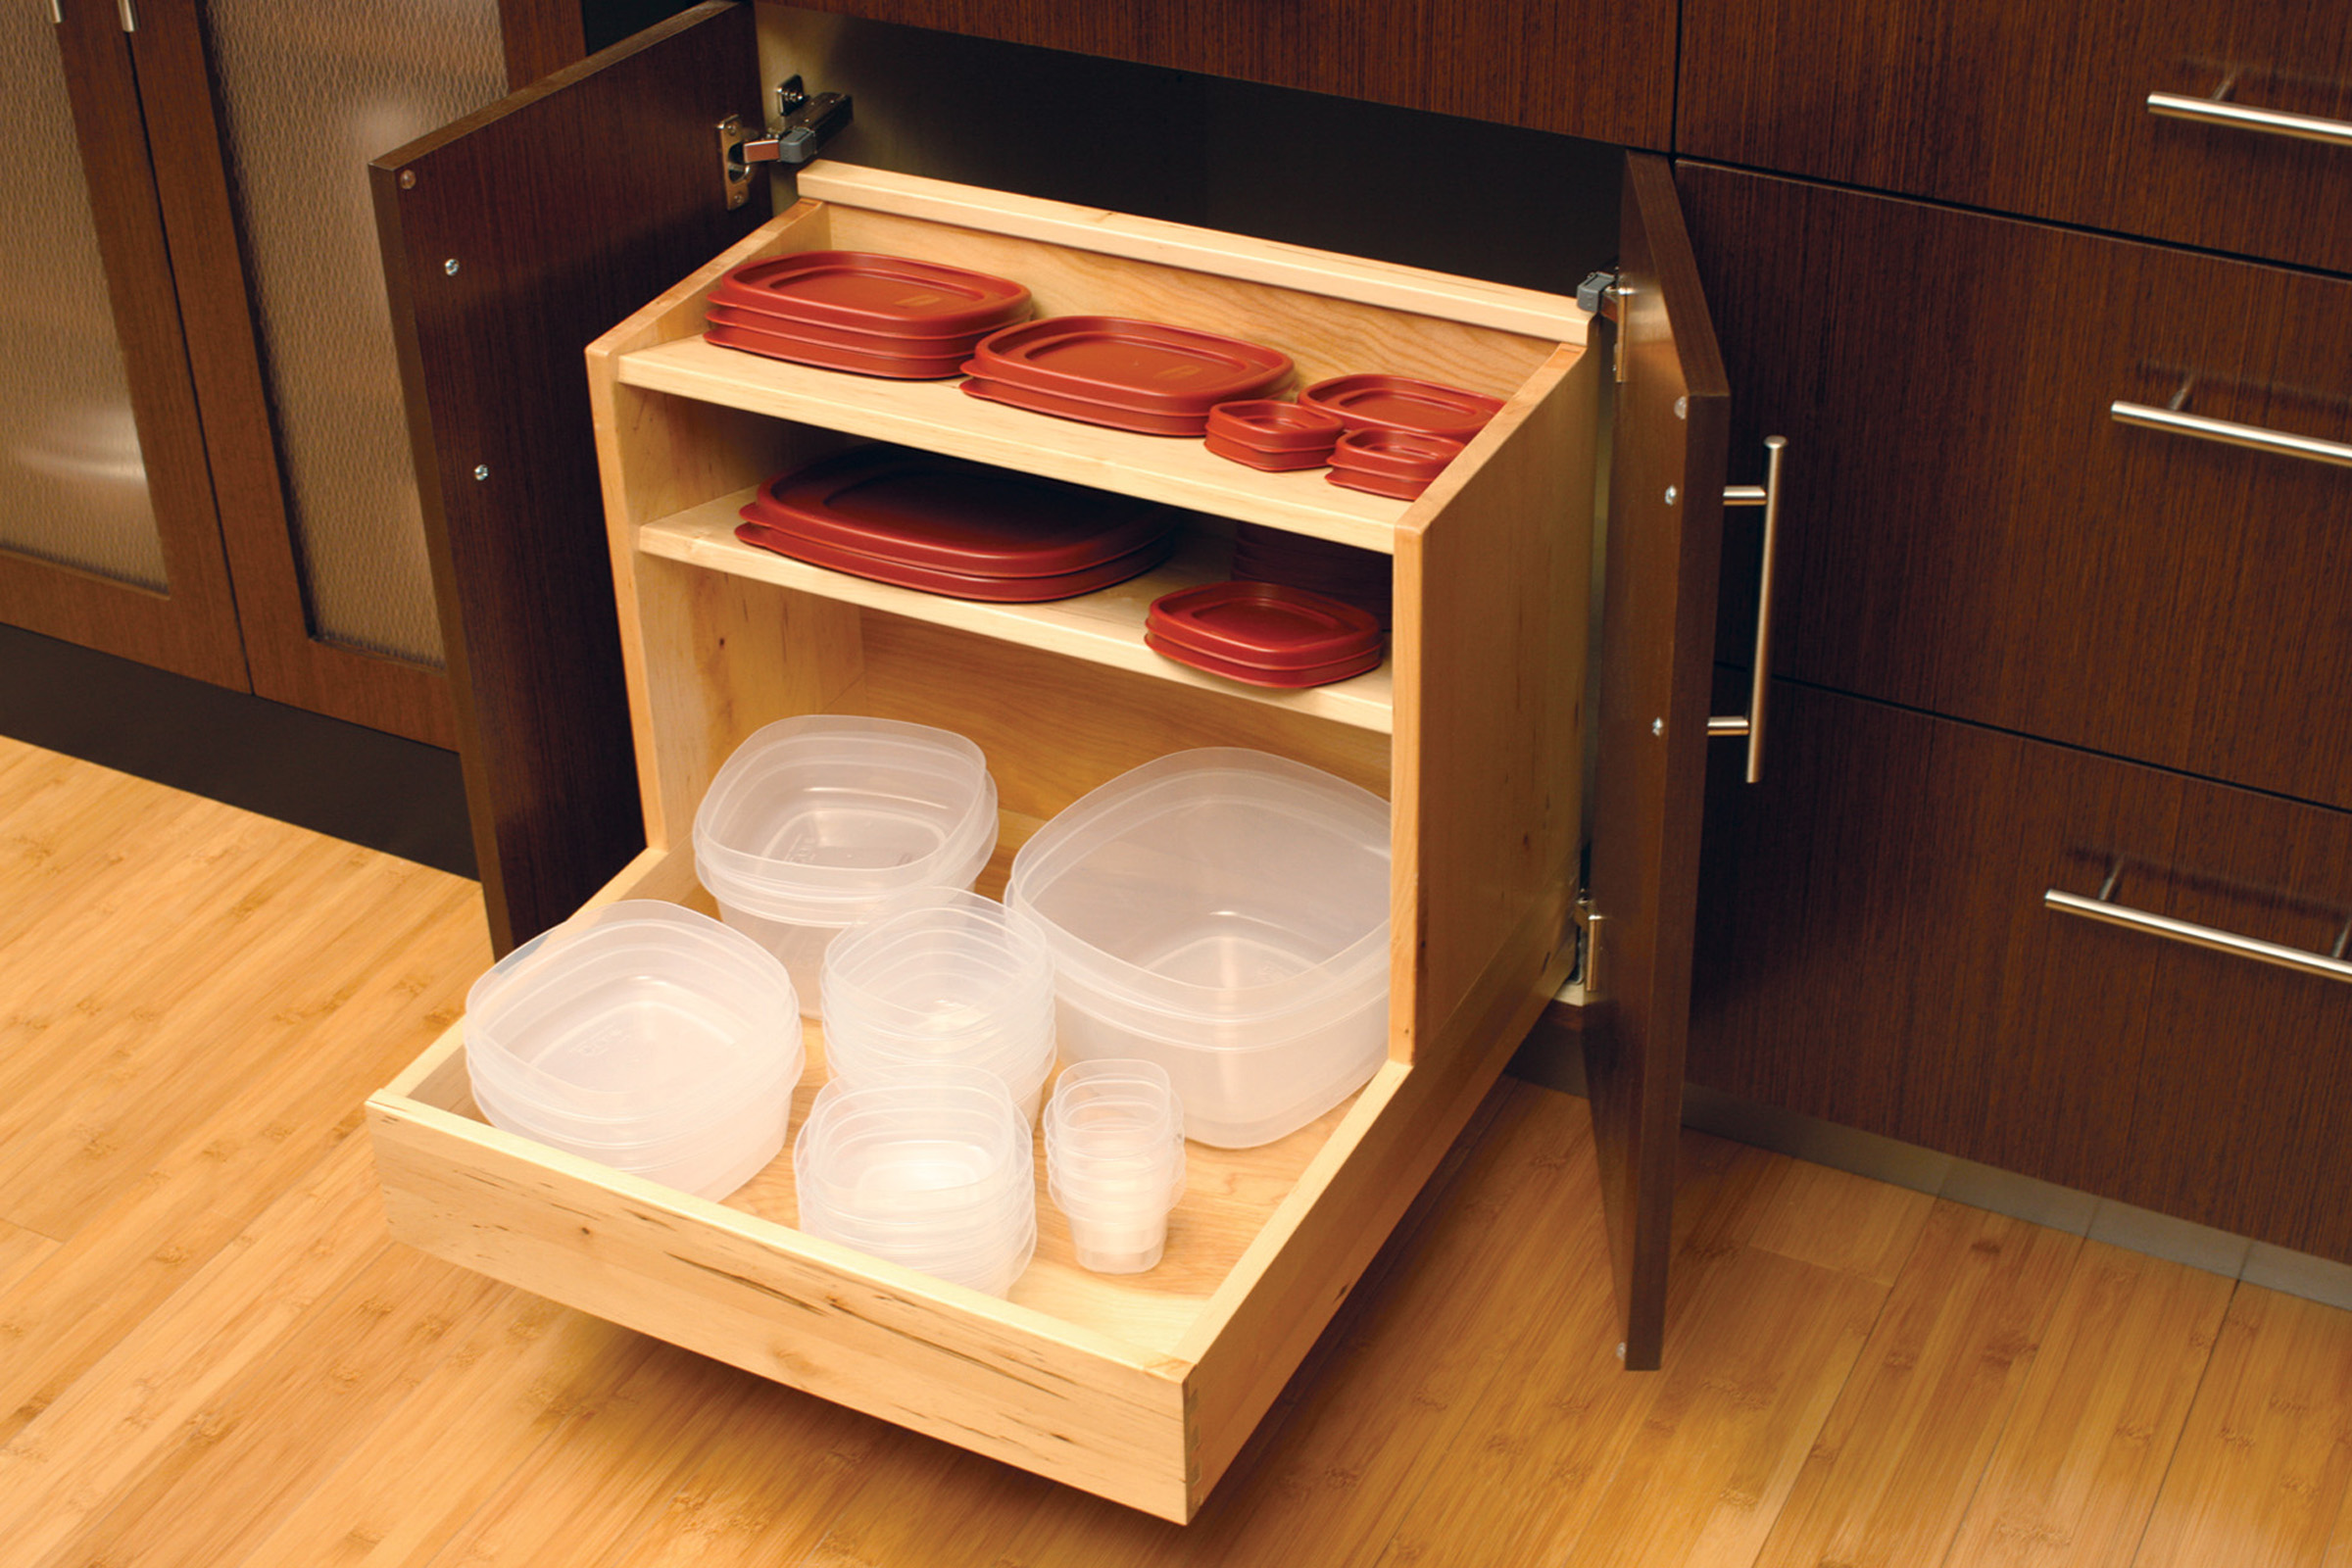 ‰Pot & Pan Roll-Out For Container Storage